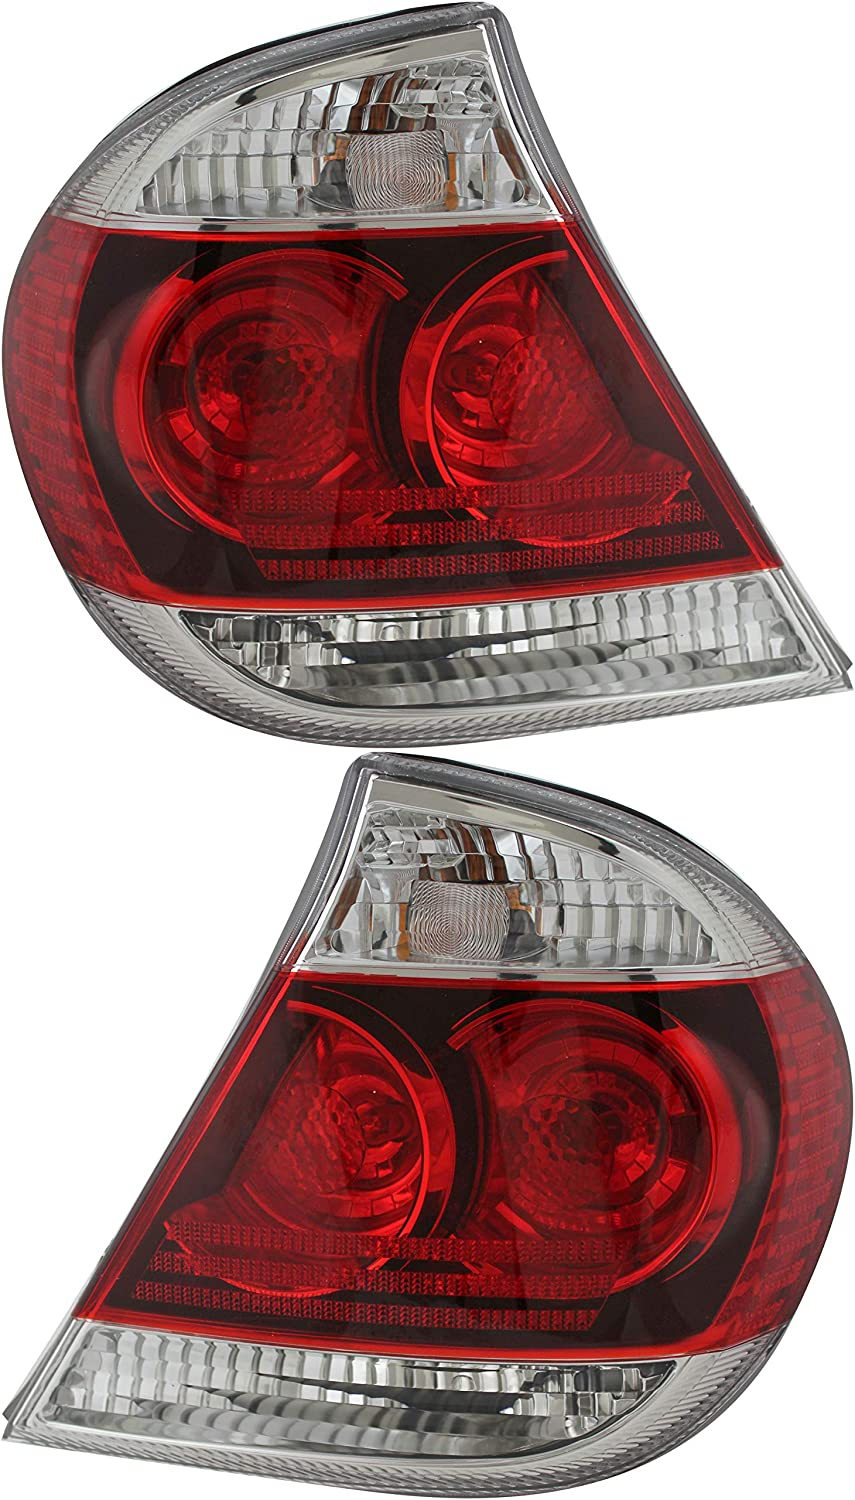 For Toyota Camry Outer Tail Light 正規取扱店 ストアー and Driver 2006 2005 Passenger